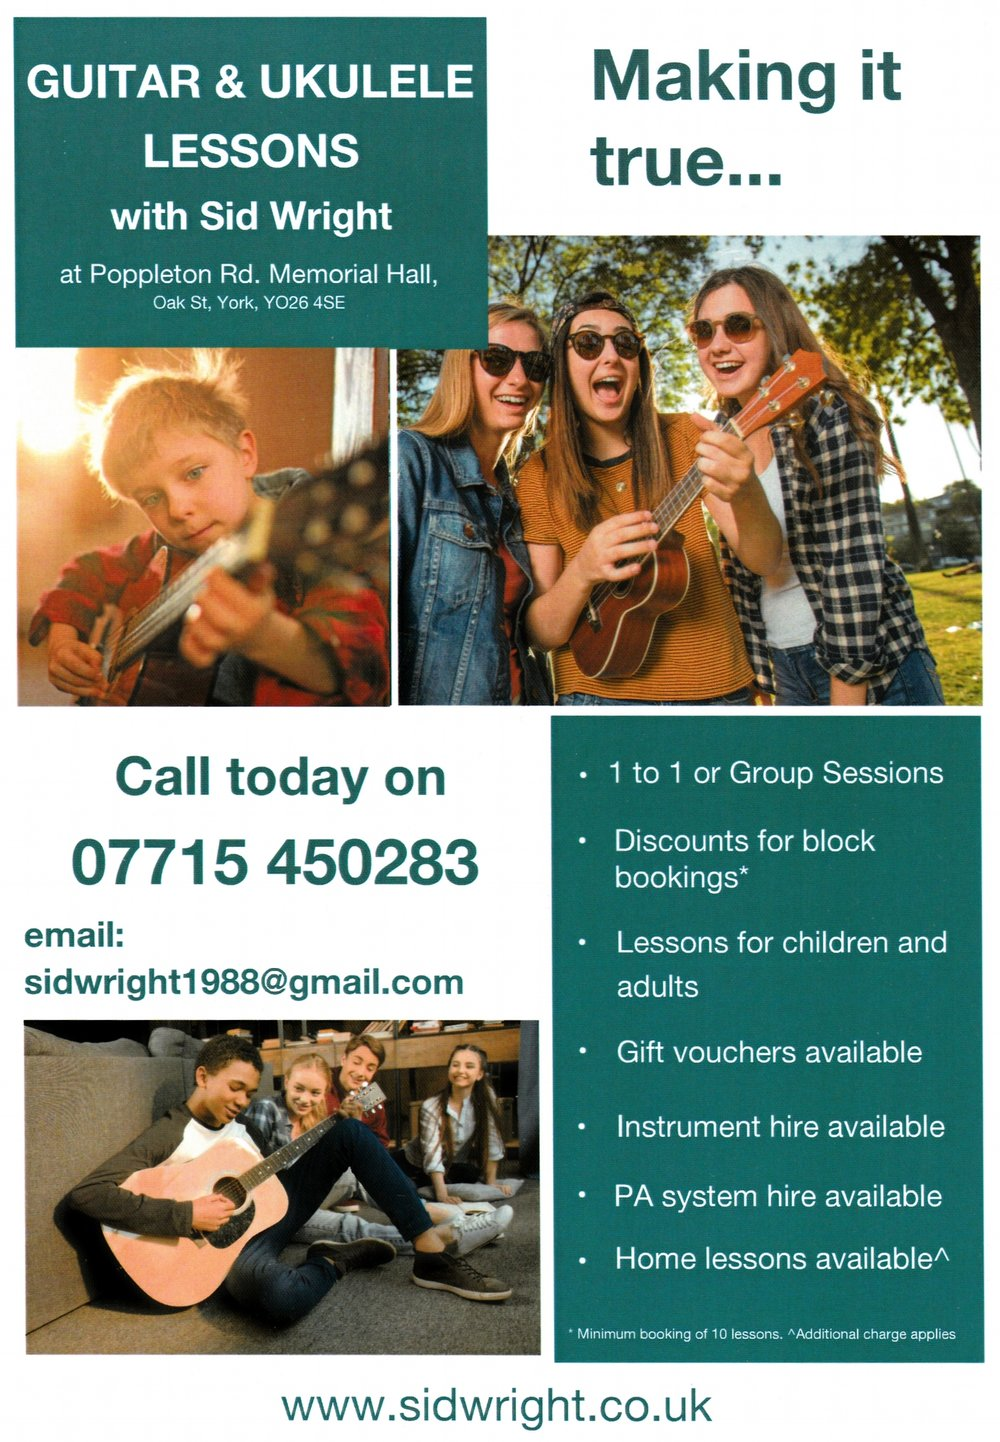 Sid Wright Tuition Promotion Poster sidwright.co.uk.jpg